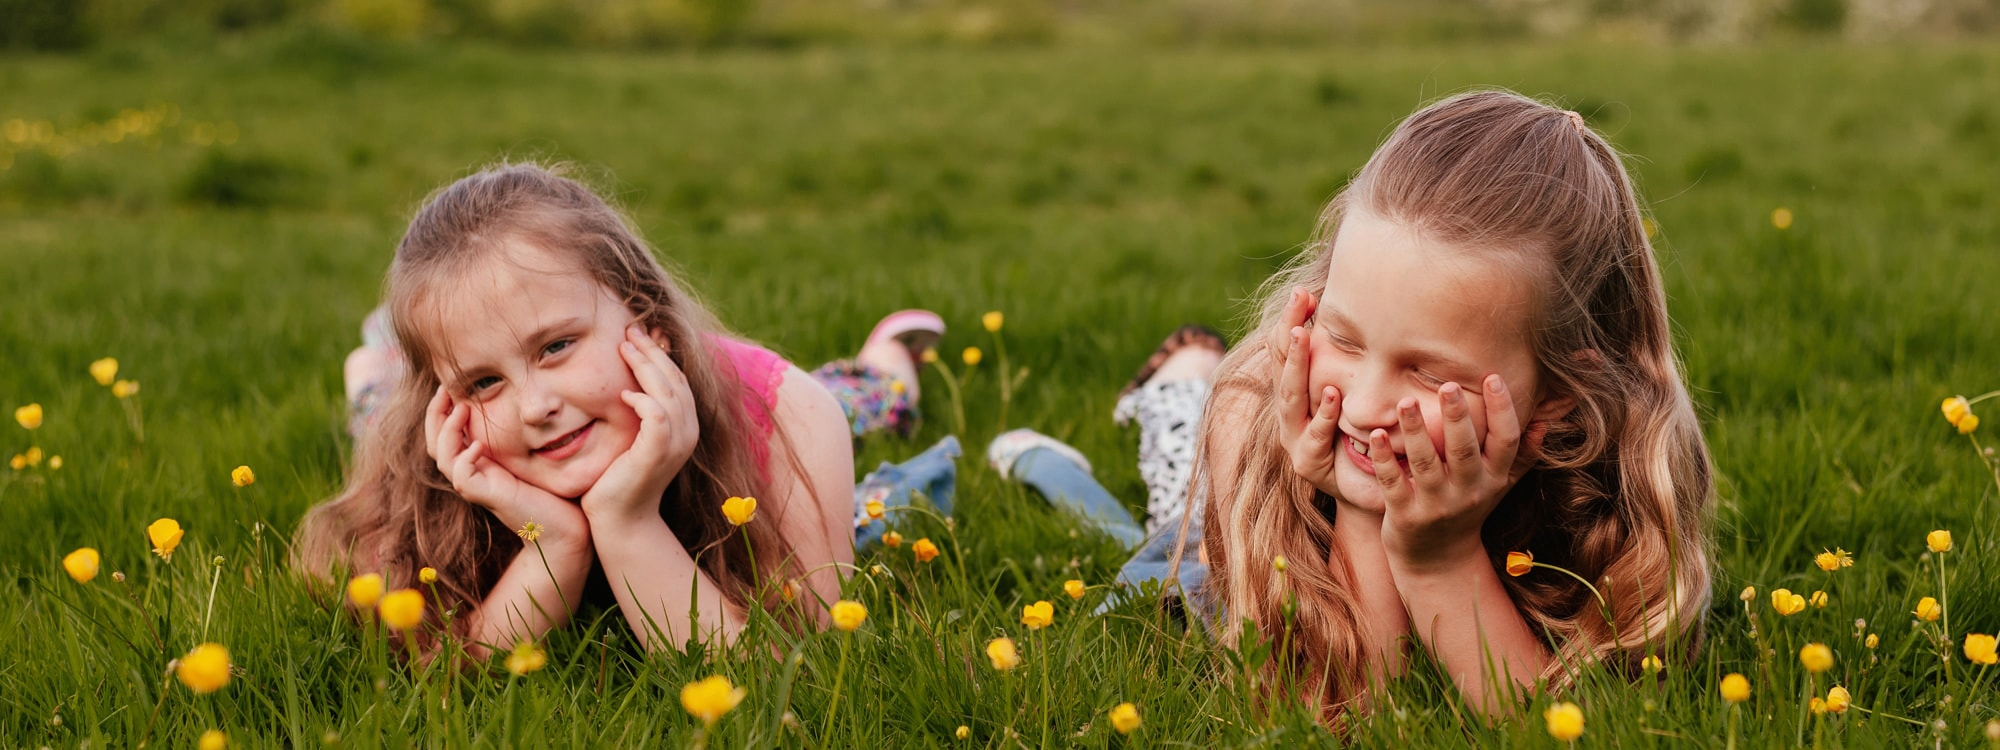 Twin girls lay together in buttercups in cute family photography Essex